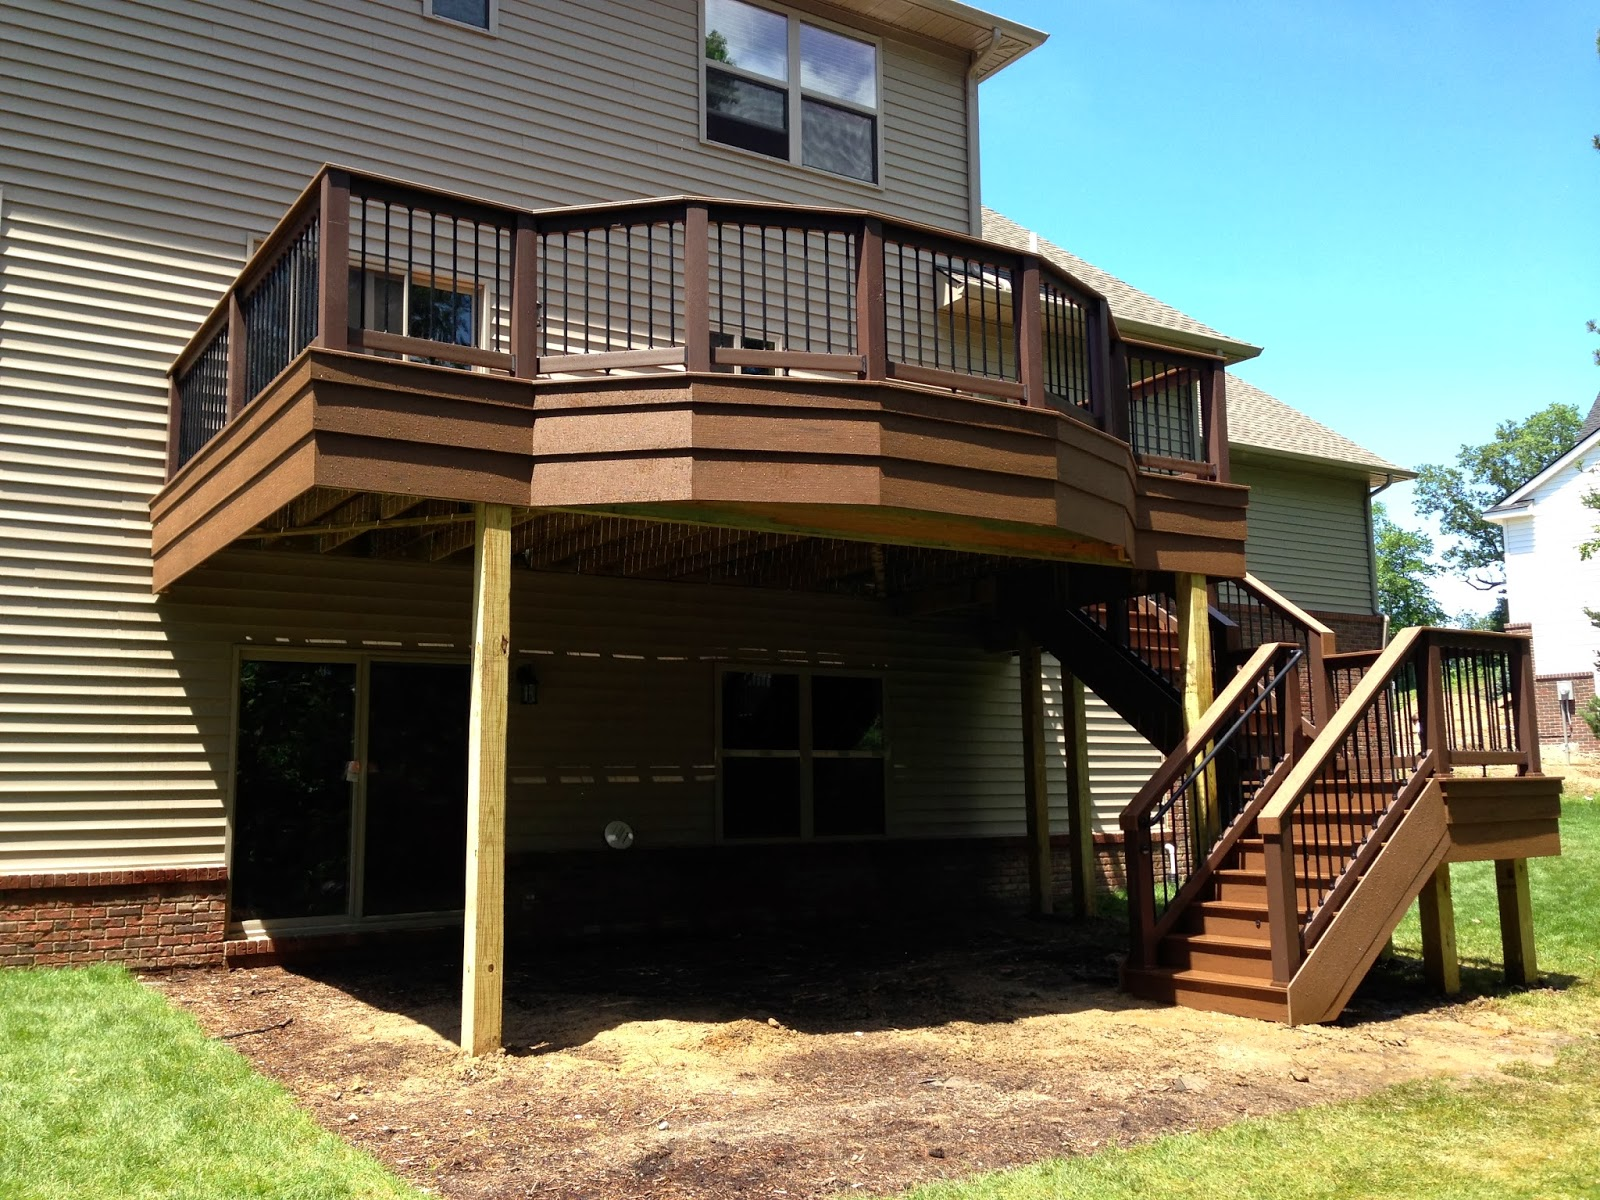 Outdoor living deck designs from 2013 adding flair to a Walkout basement deck designs